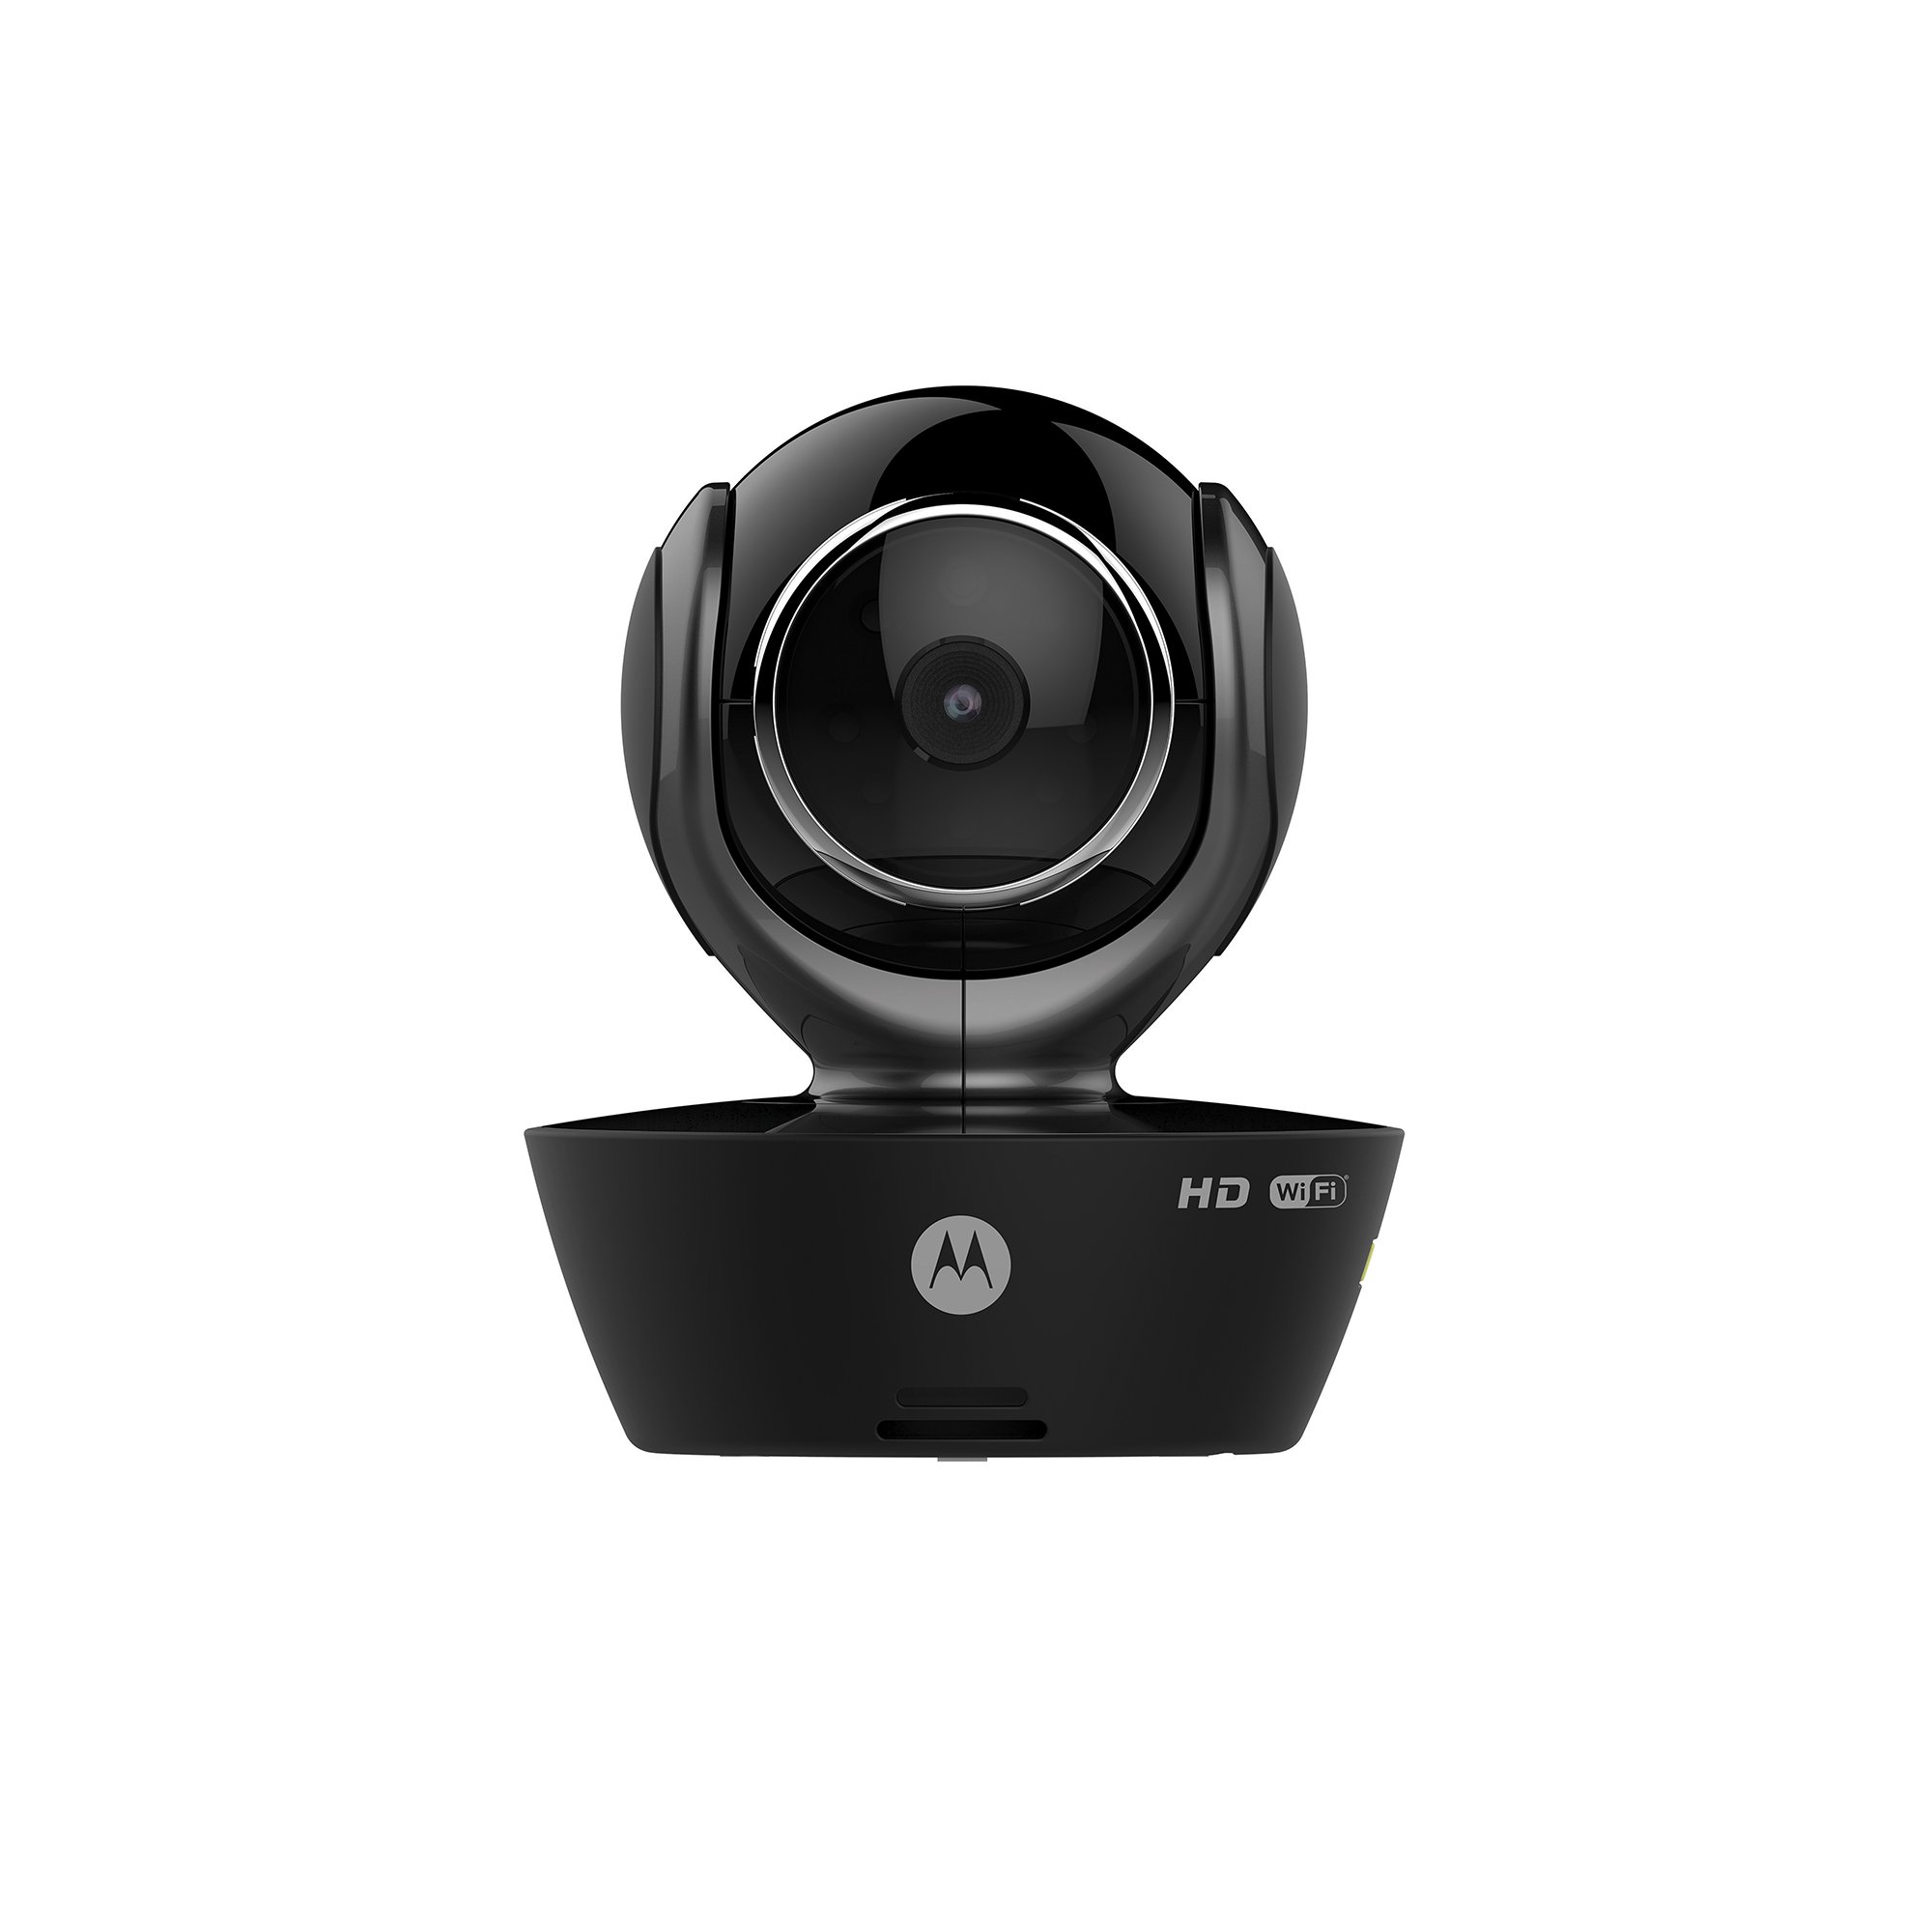 Motorola FOCUS85-B Wi-Fi HD Home Monitoring Camera with Remote Pan, Tilt and Zoom (Black) by Motorola Home